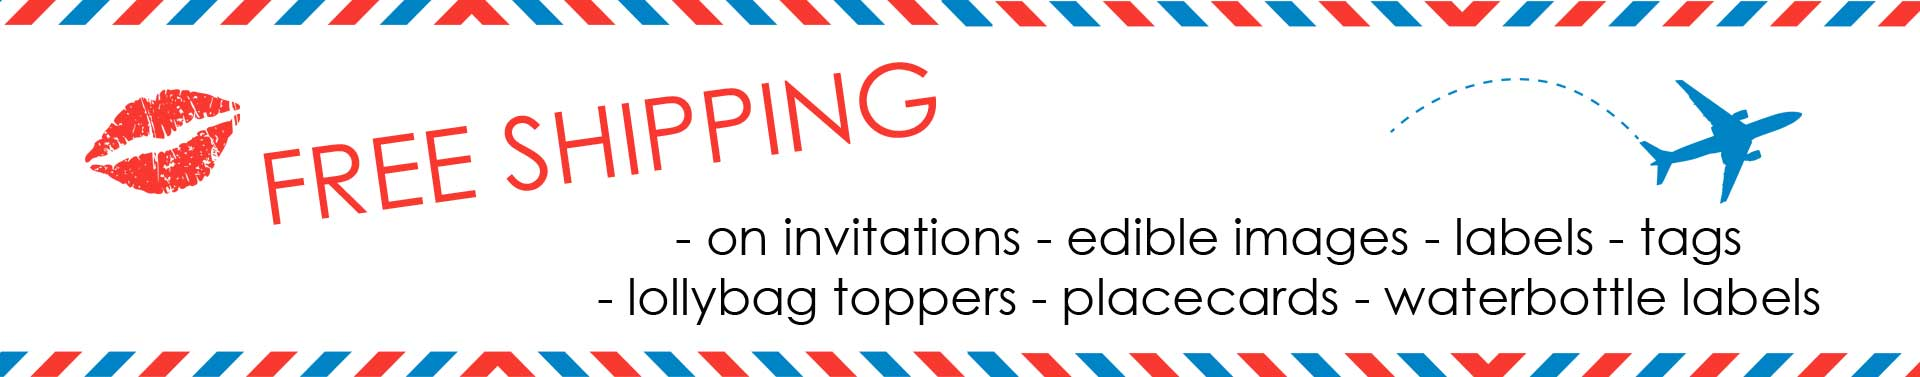 Free Shipping on Invitations